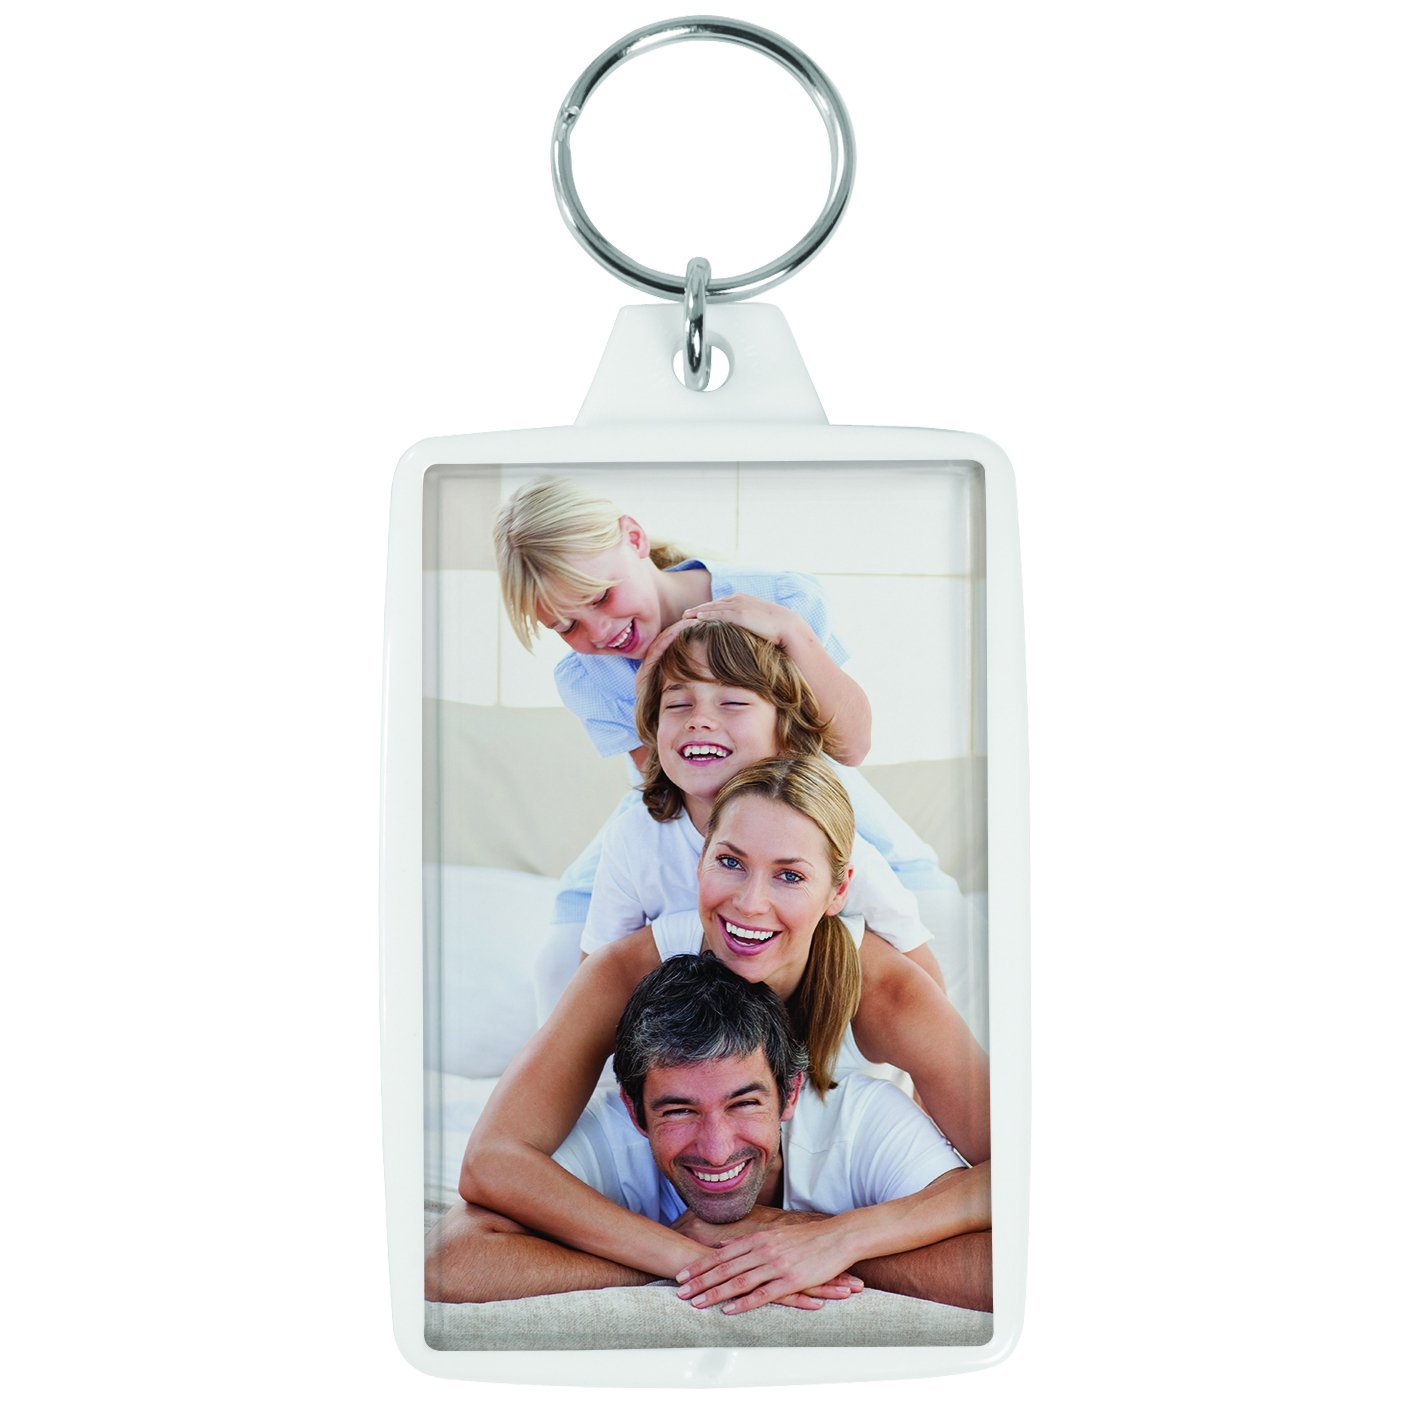 Snapins White 1.75'' x 2.75'' Photo Keychains - Case of 144